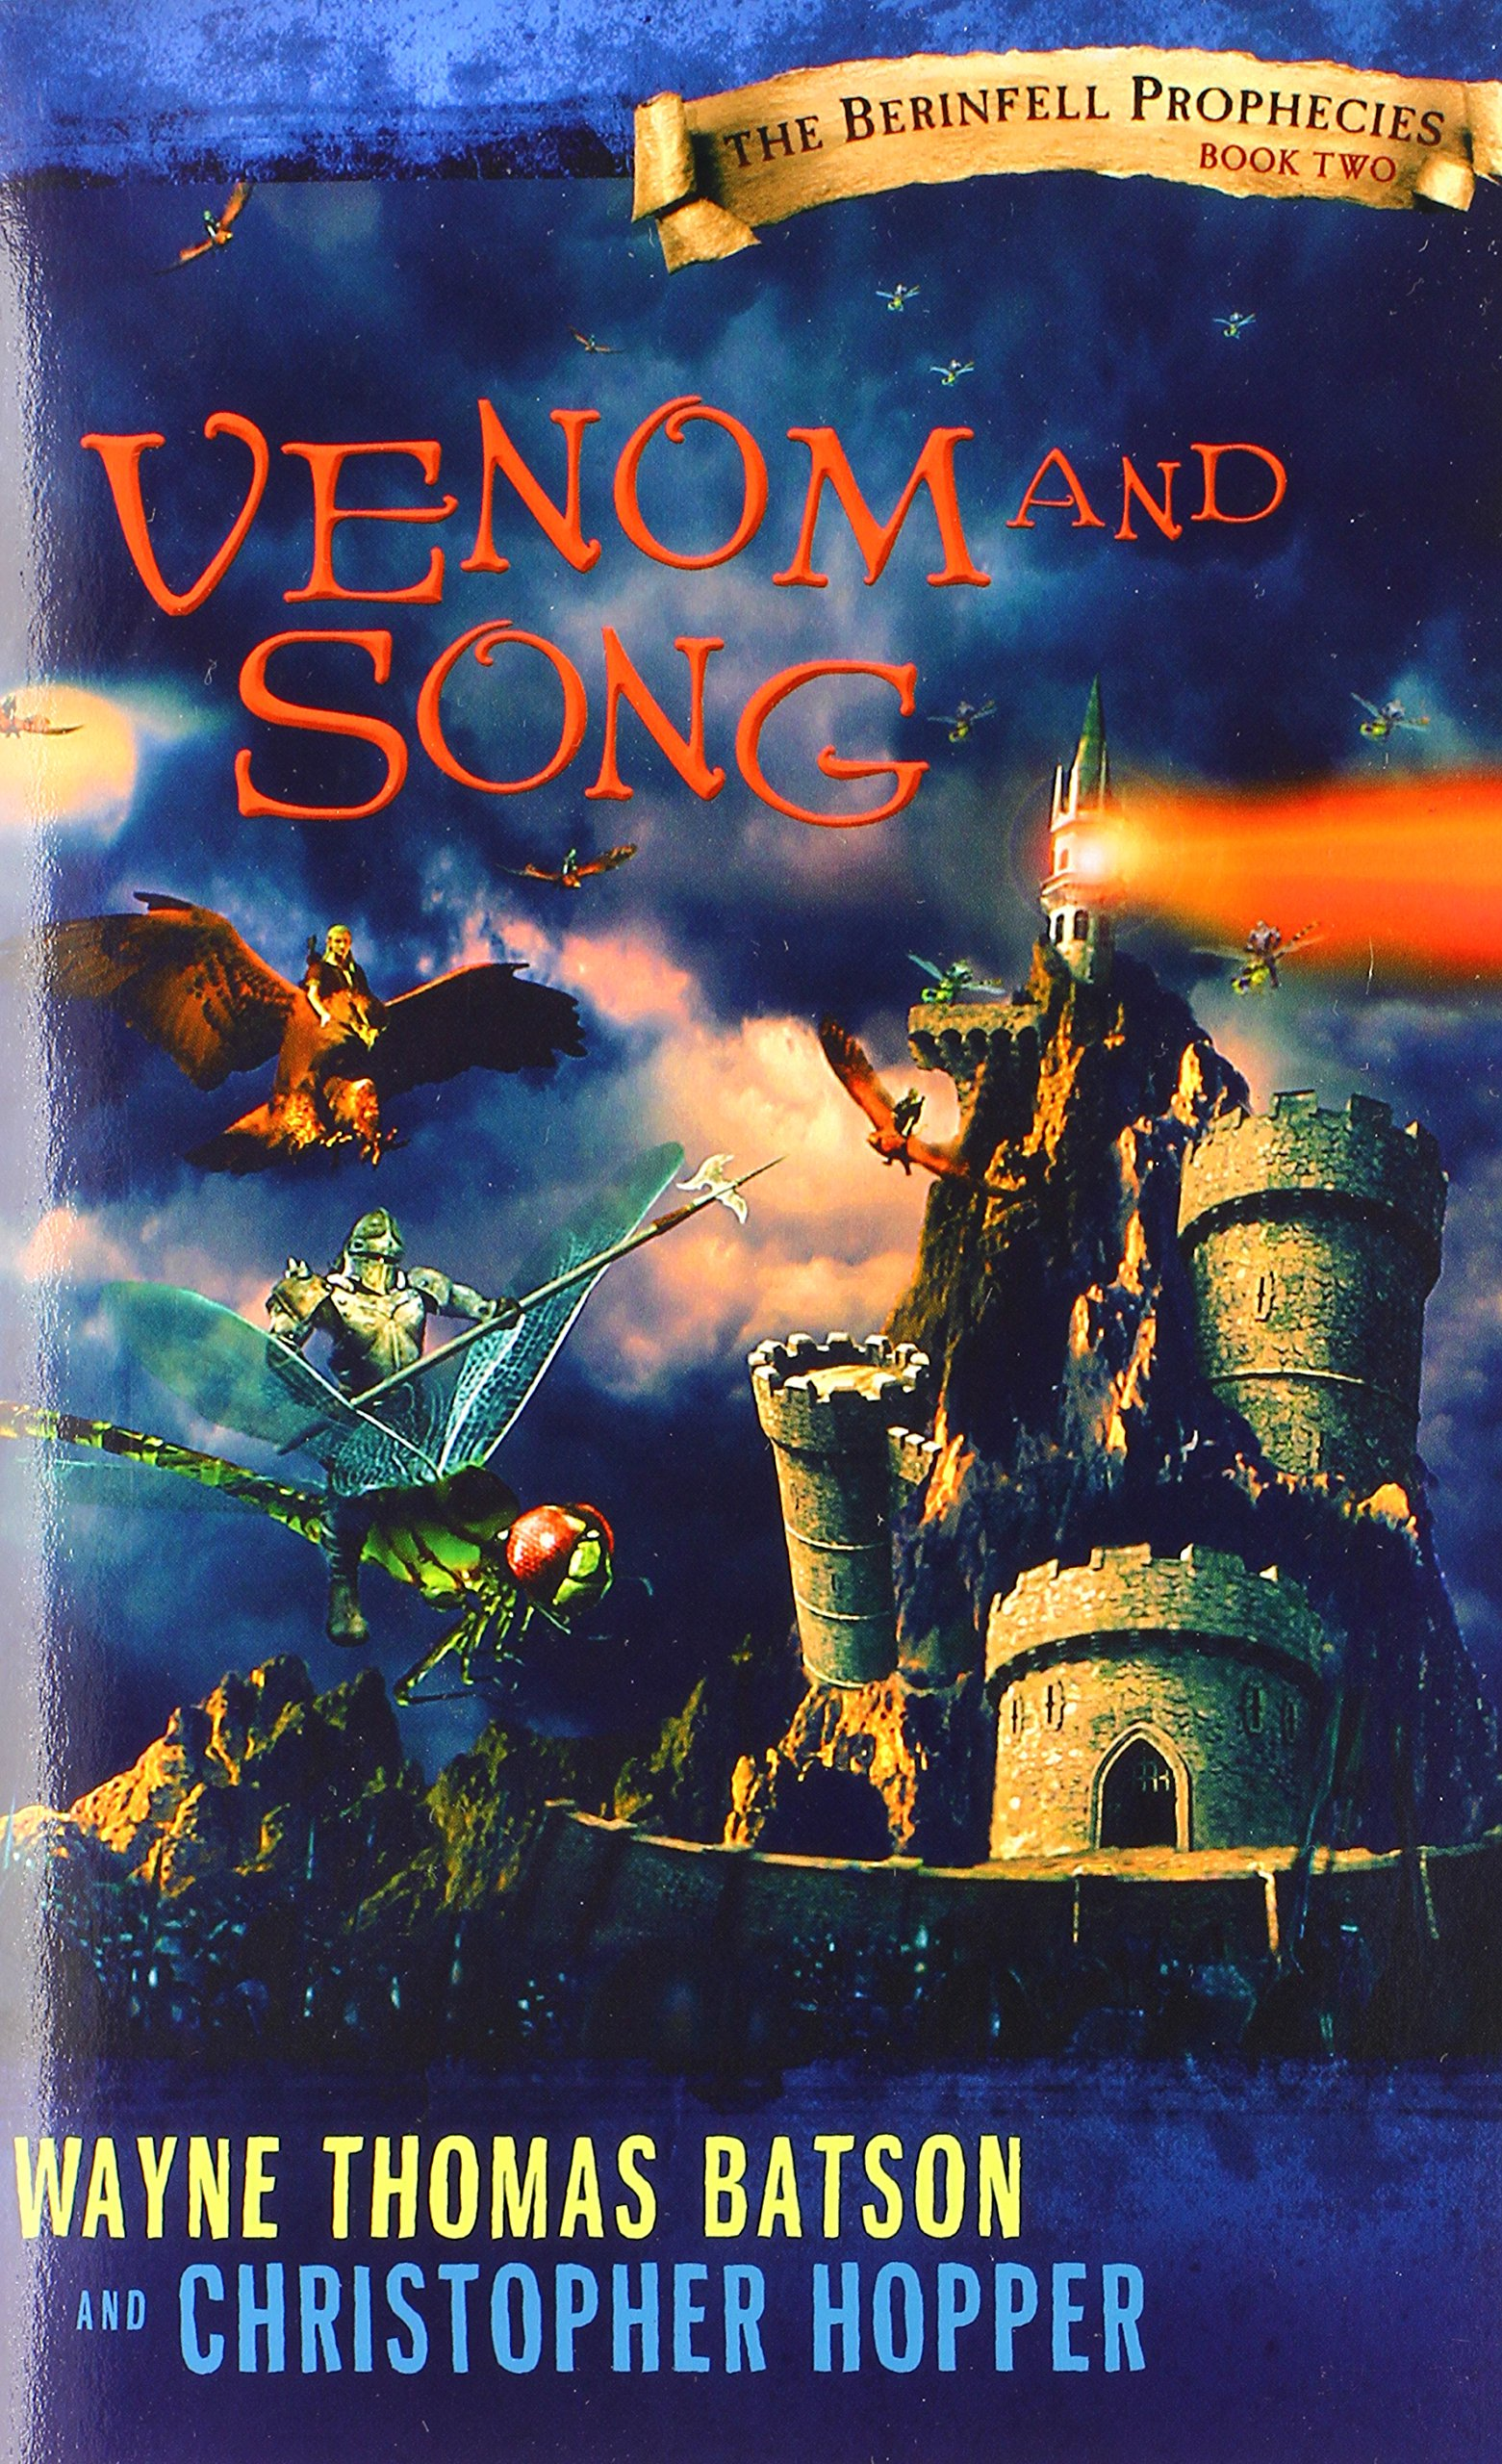 Venom and Song: The Berinfell Prophecies Series - Book Two